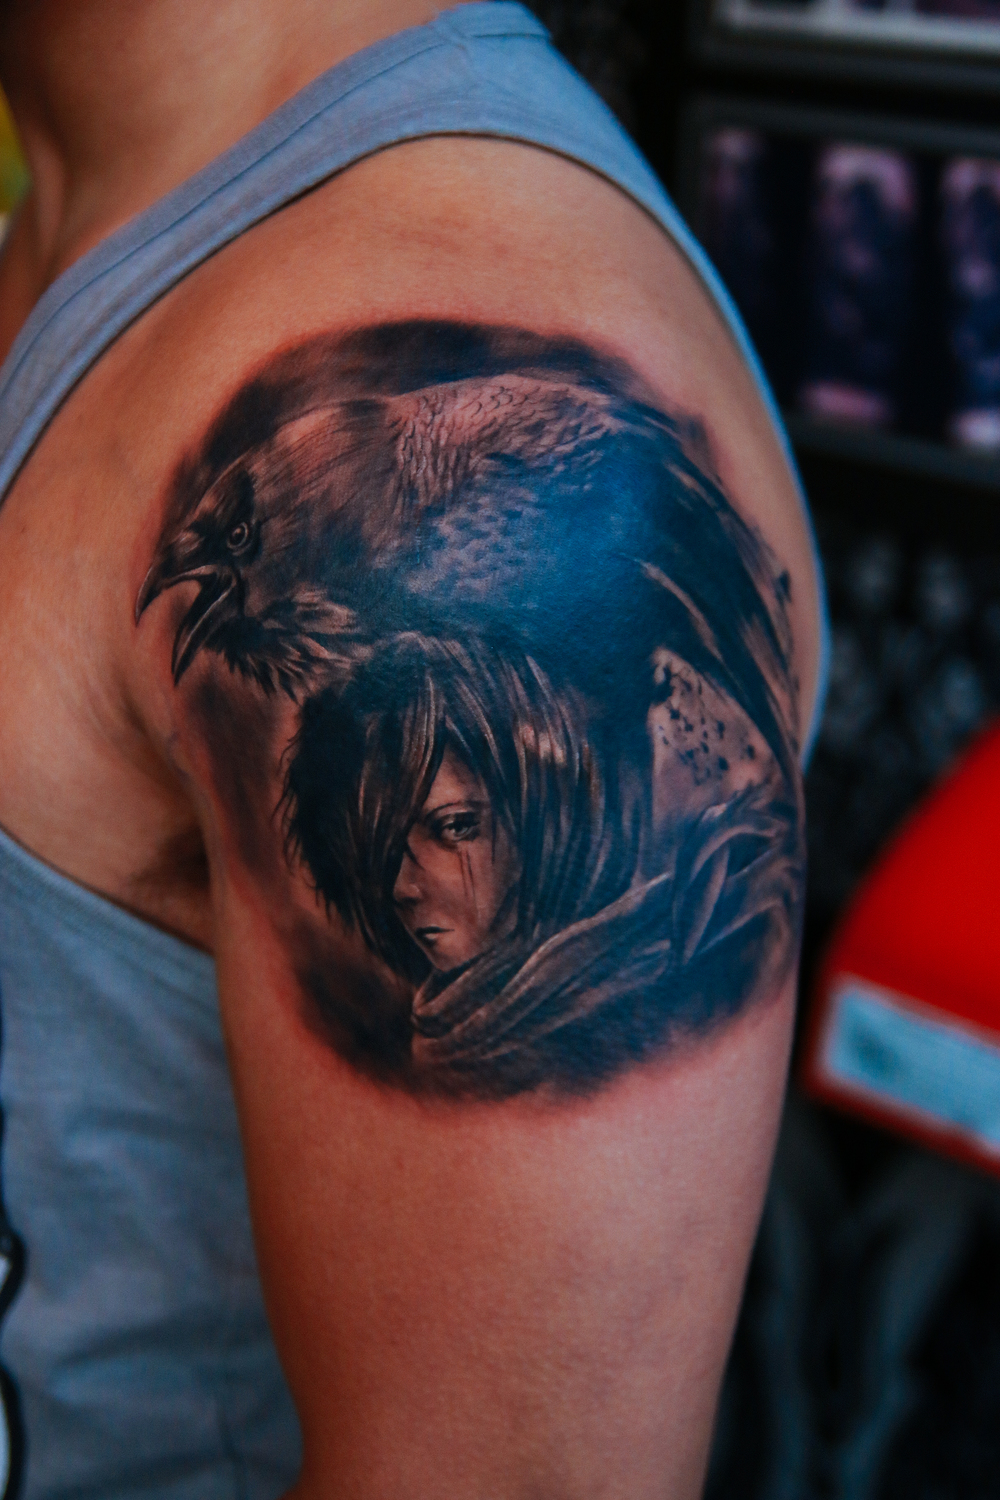 kwon-anime-tattoo-crow-freshly-inked.jpg